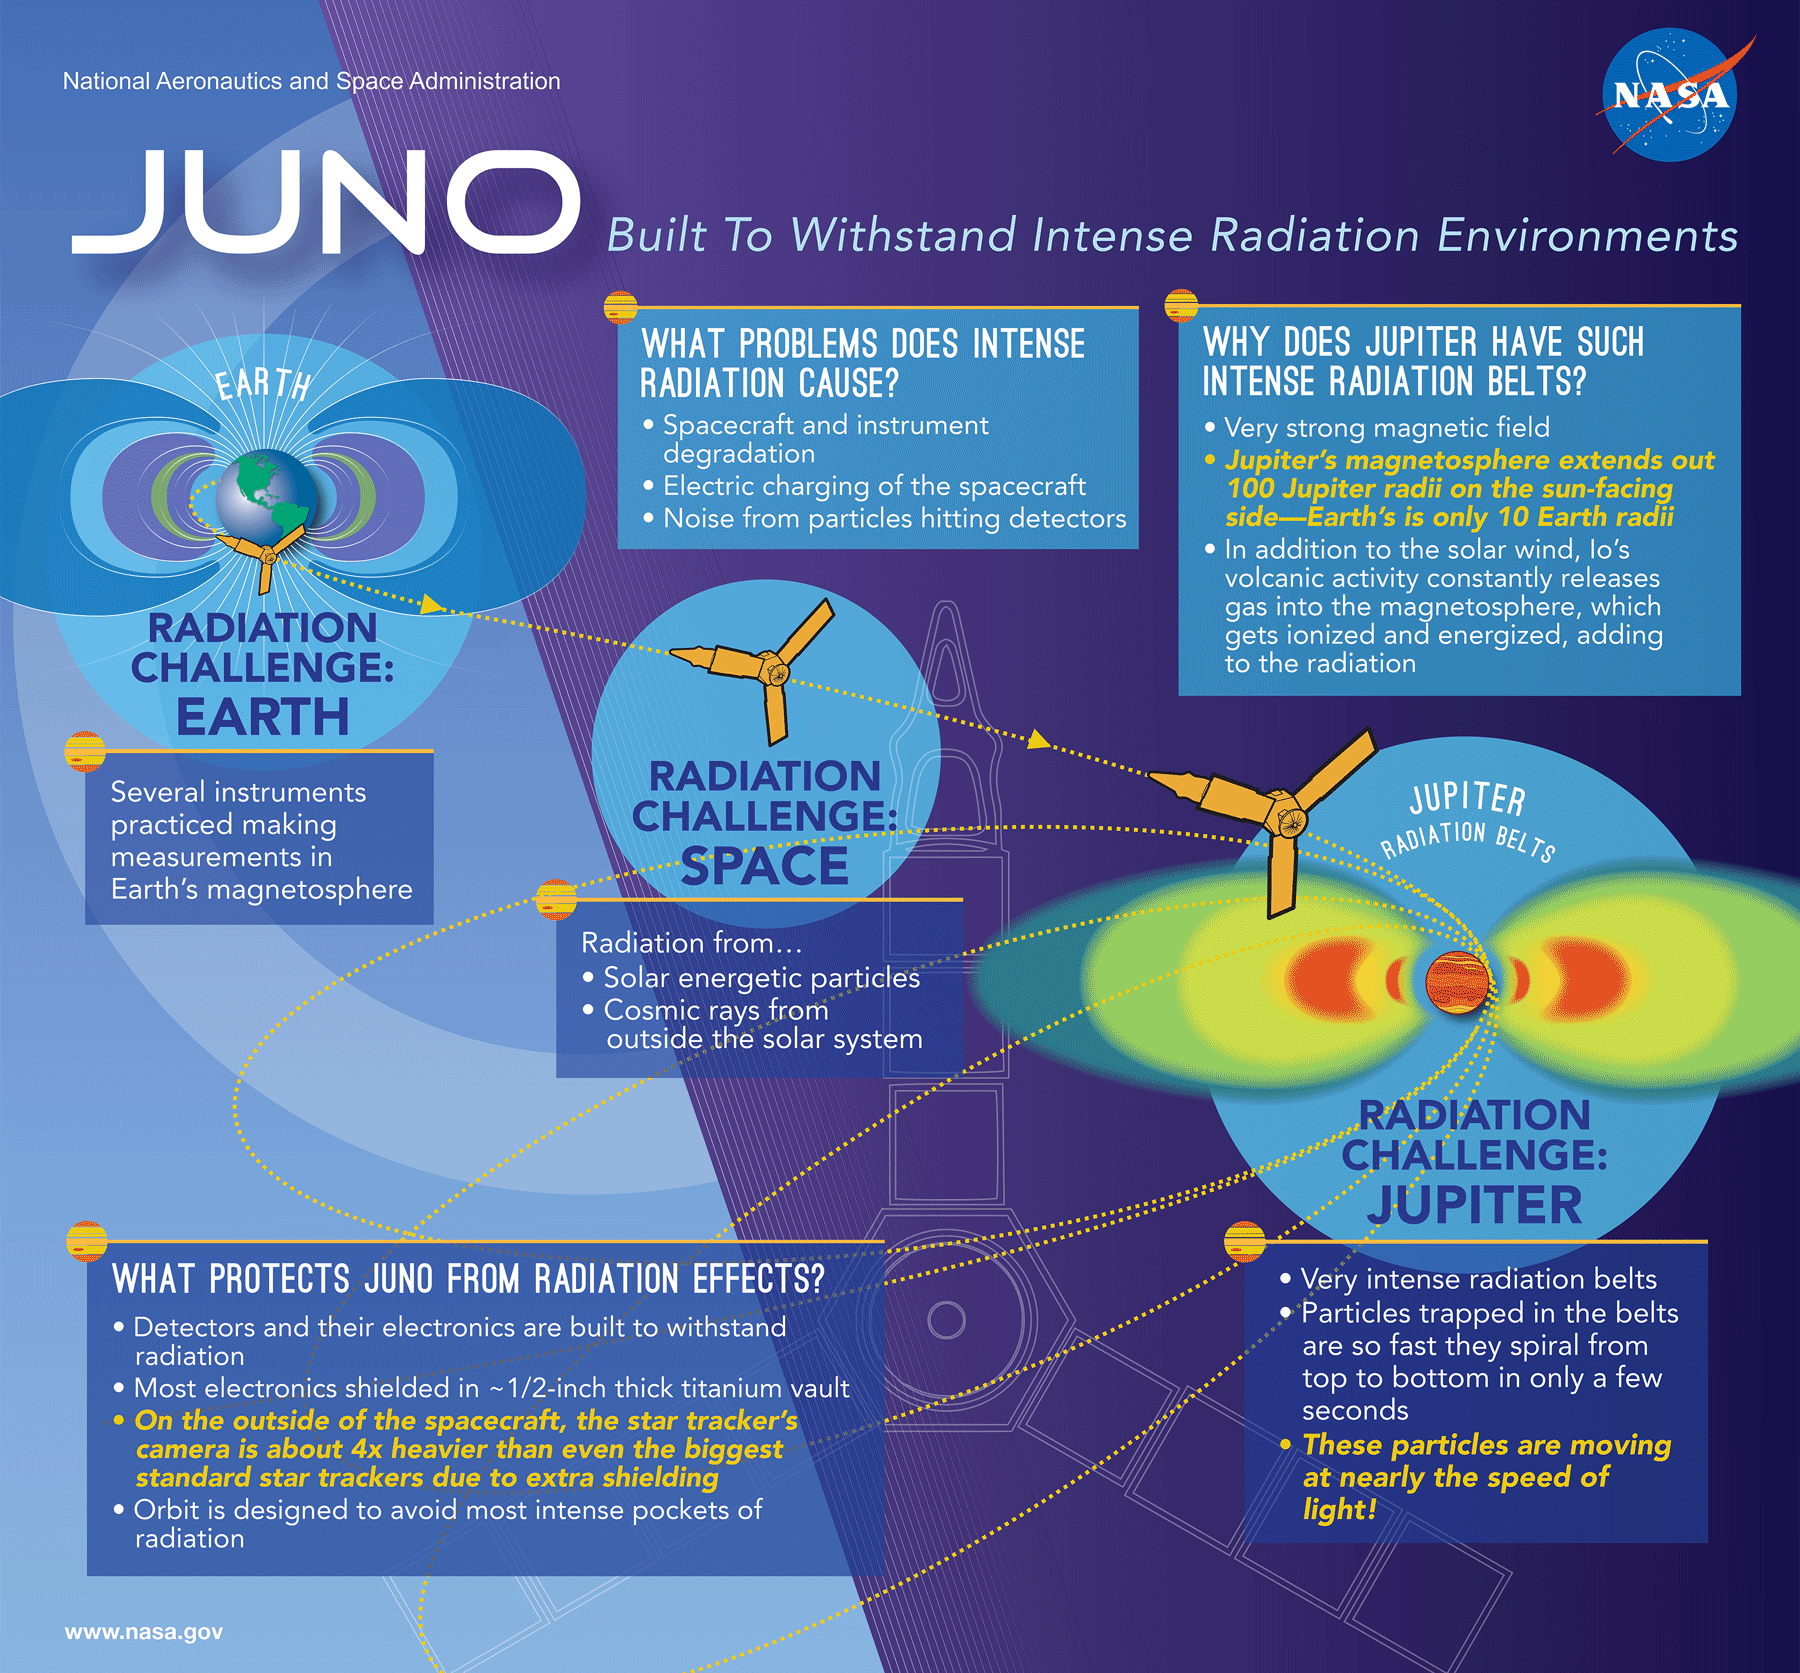 Juno, built to withstand intense radiation